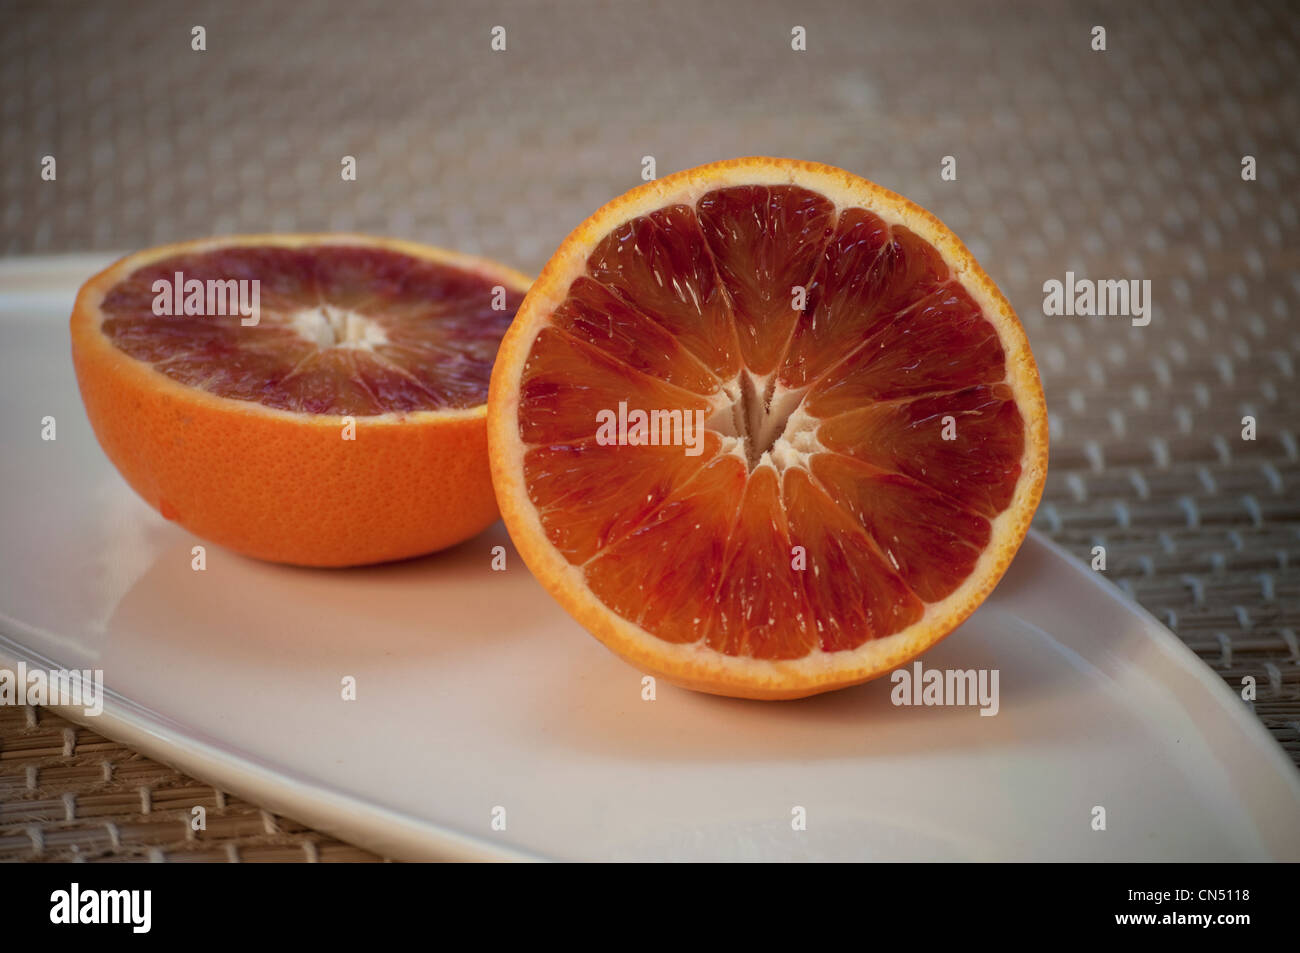 bright red blood orange on a cream coloured plate stock photo